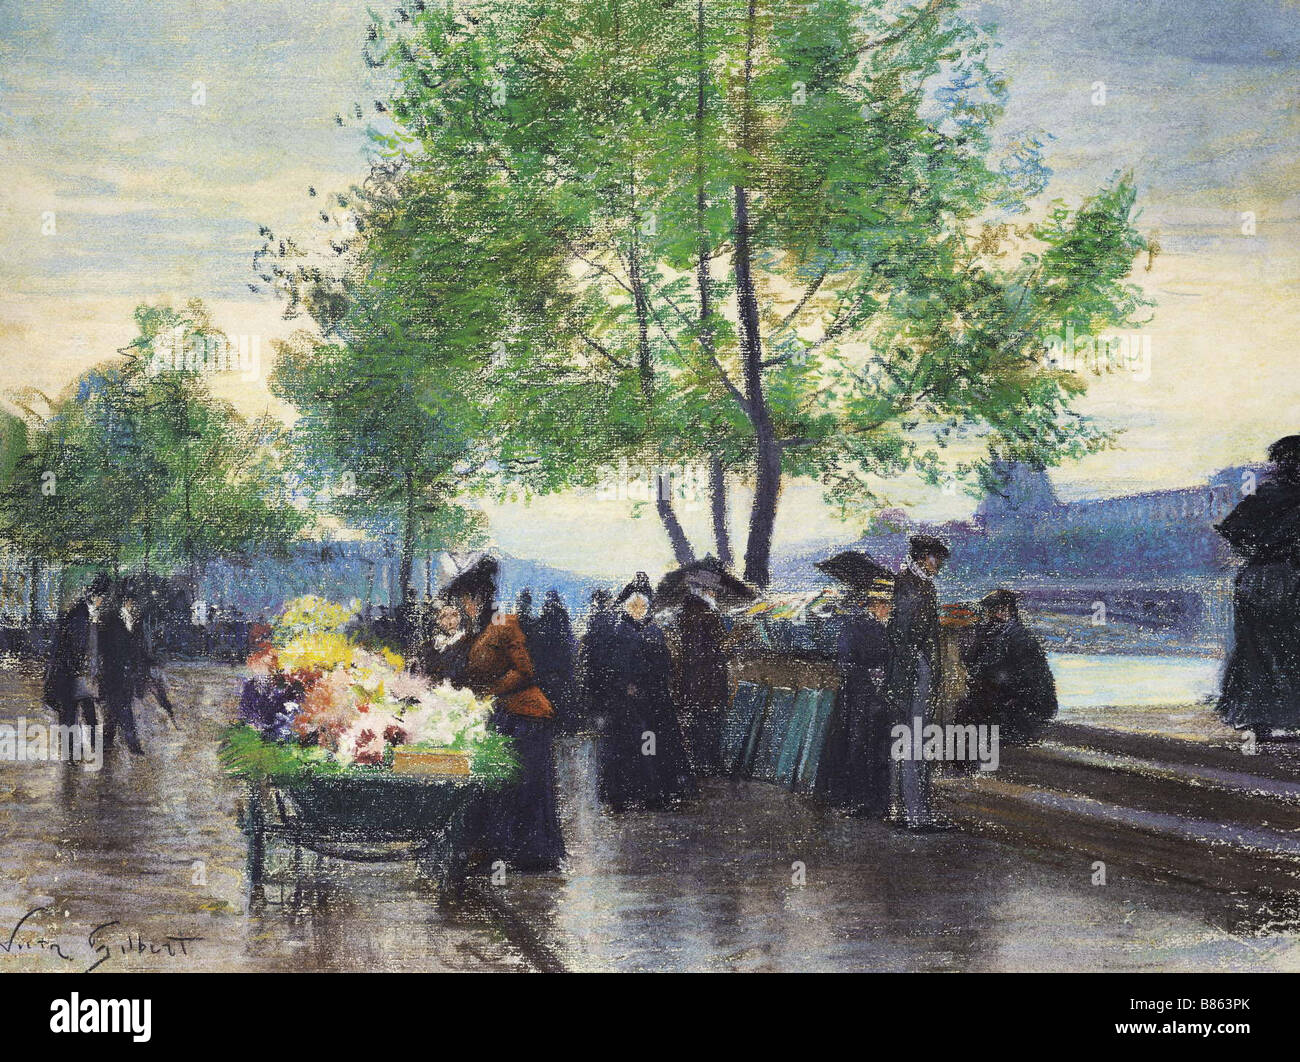 Gilbert, Books Sellers on the Banks of the Seine Stock Photo